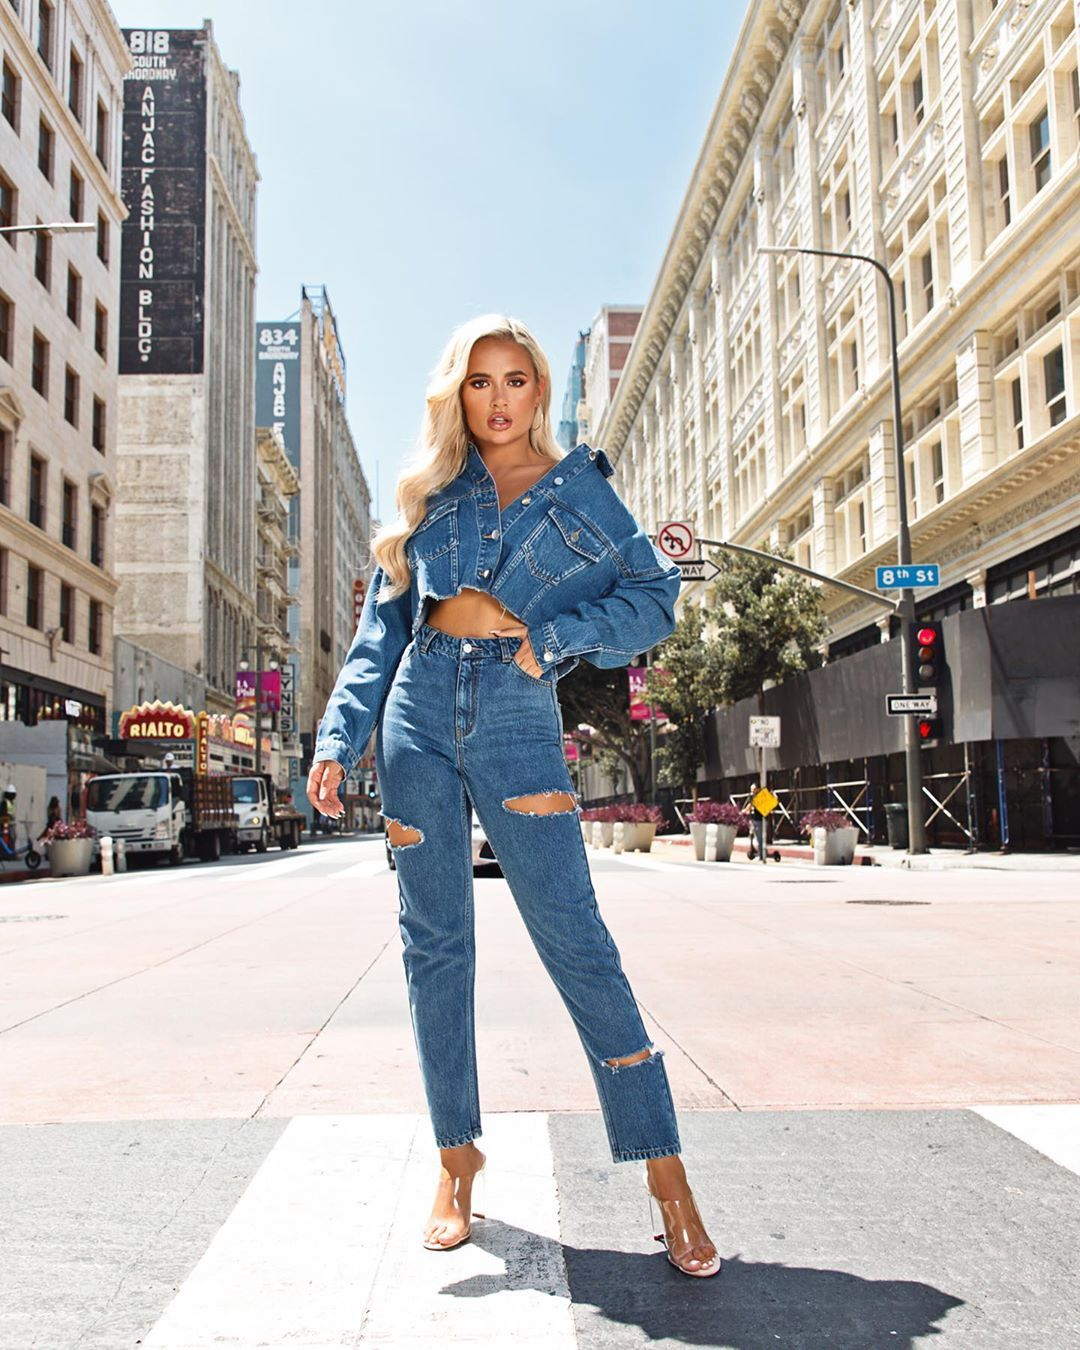 Image may contain:  Love Island 2019 contestants, Love Island, 2019, now, job, Instagram, updates, news, latest, series five, Molly-Mae Hague, Shoe, Female, Footwear, Building, Road, City, Street, Town, Urban, Light, Traffic Light, Human, Person, Denim, Jeans, Clothing, Pants, Apparel